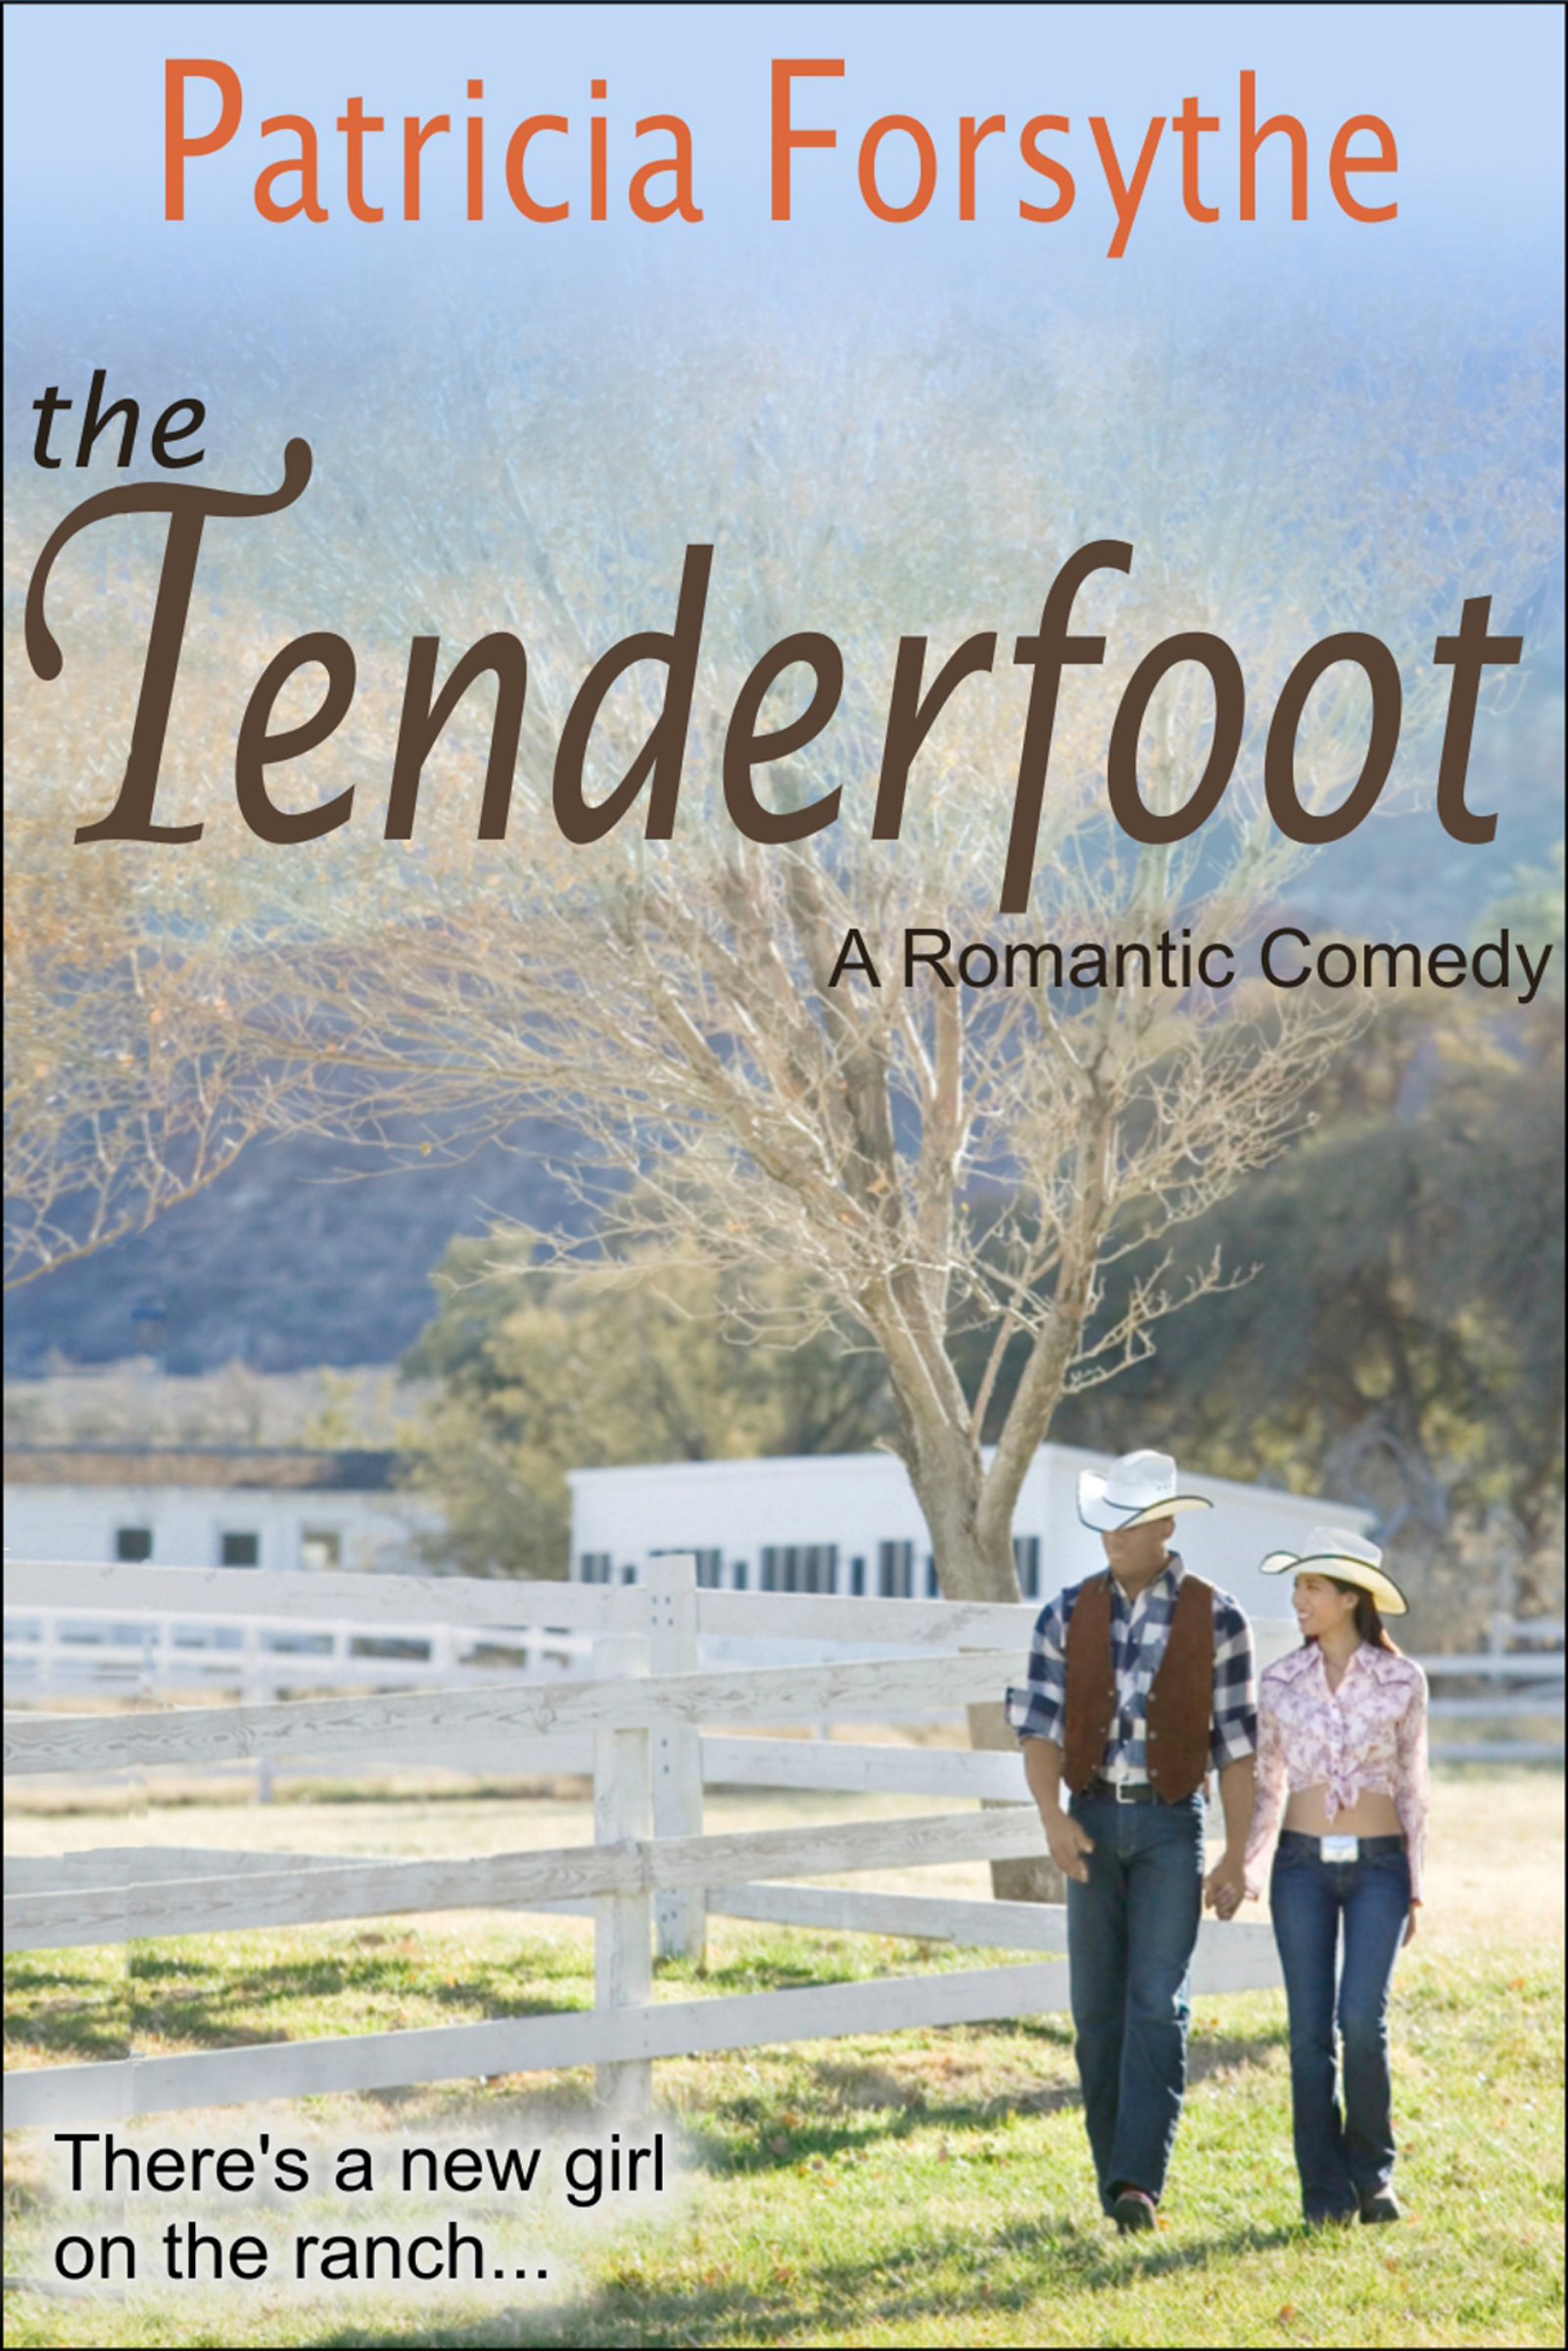 Patricia Forsythe - The Tenderfoot